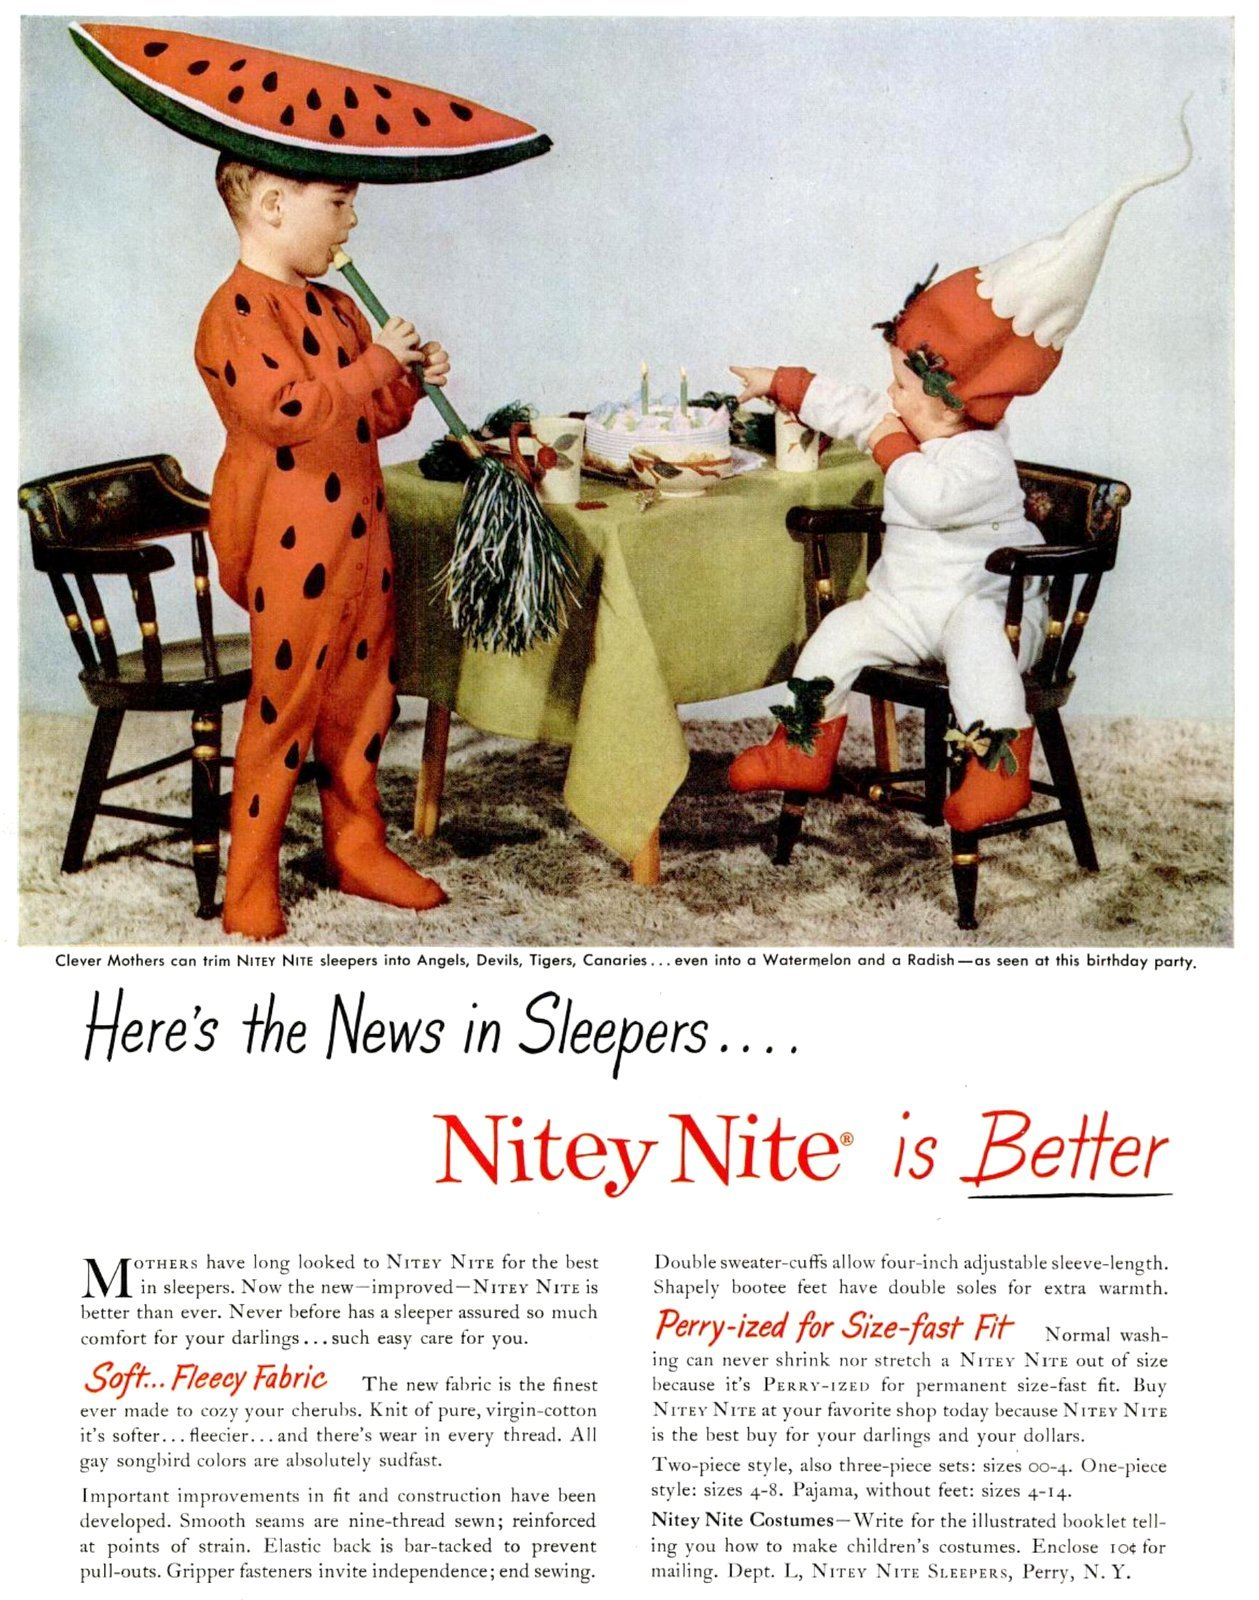 How vintage Nitey Nite sleepers could be made into costumes (1952)